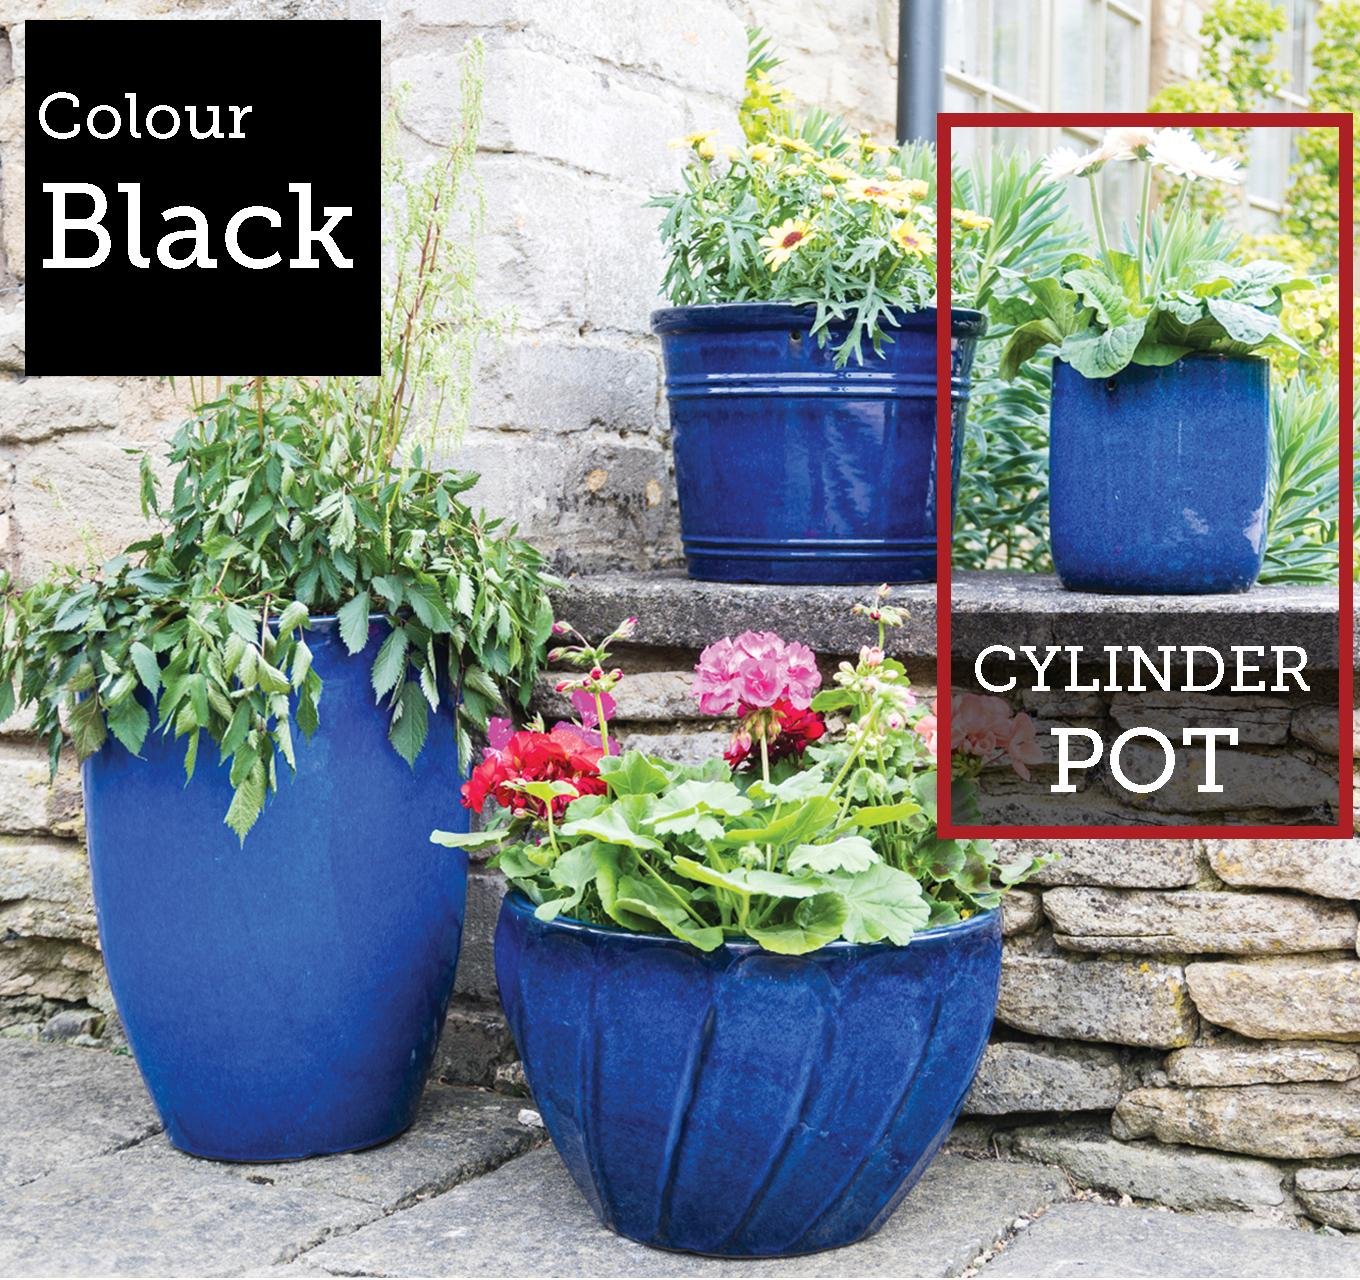 Berry Cylinder Pot Black 38x37